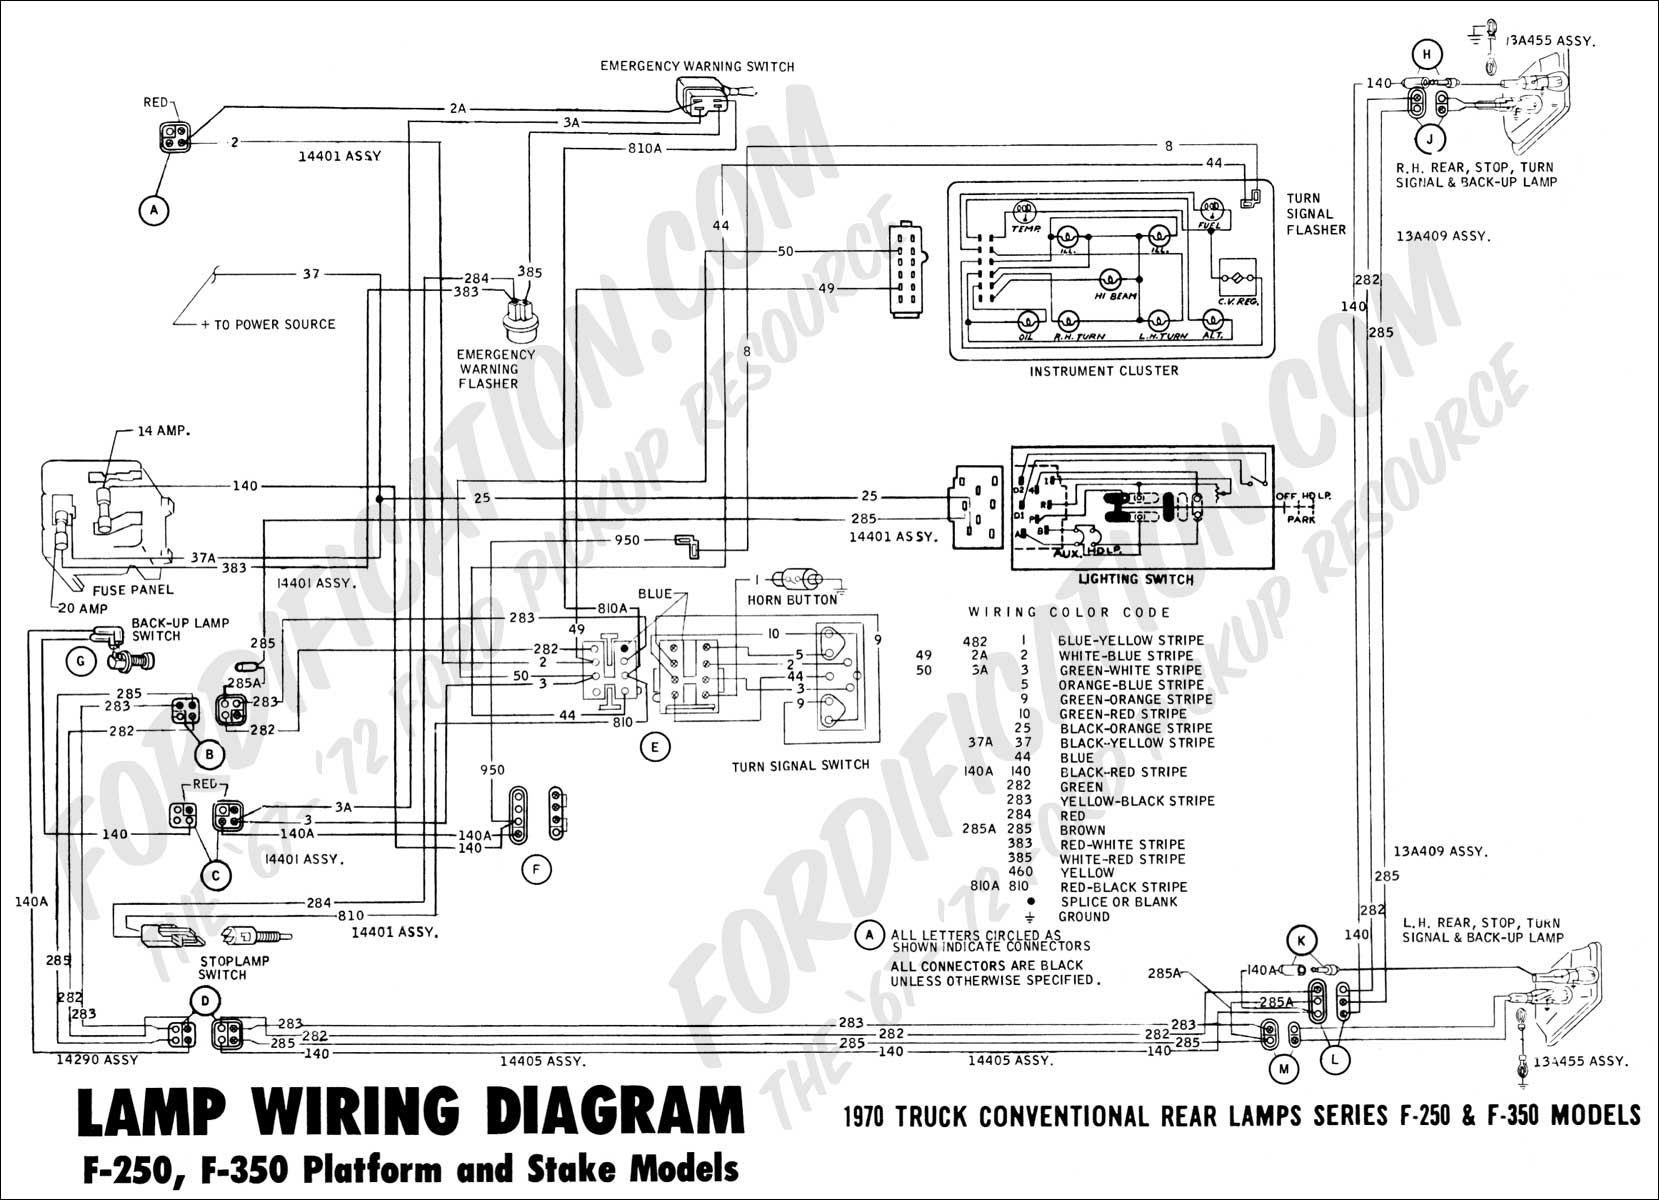 wiring diagram for 1999 ford f 250 turn signal wiring diagram for 1979 ford f 250 ford truck technical drawings and schematics - section h ...